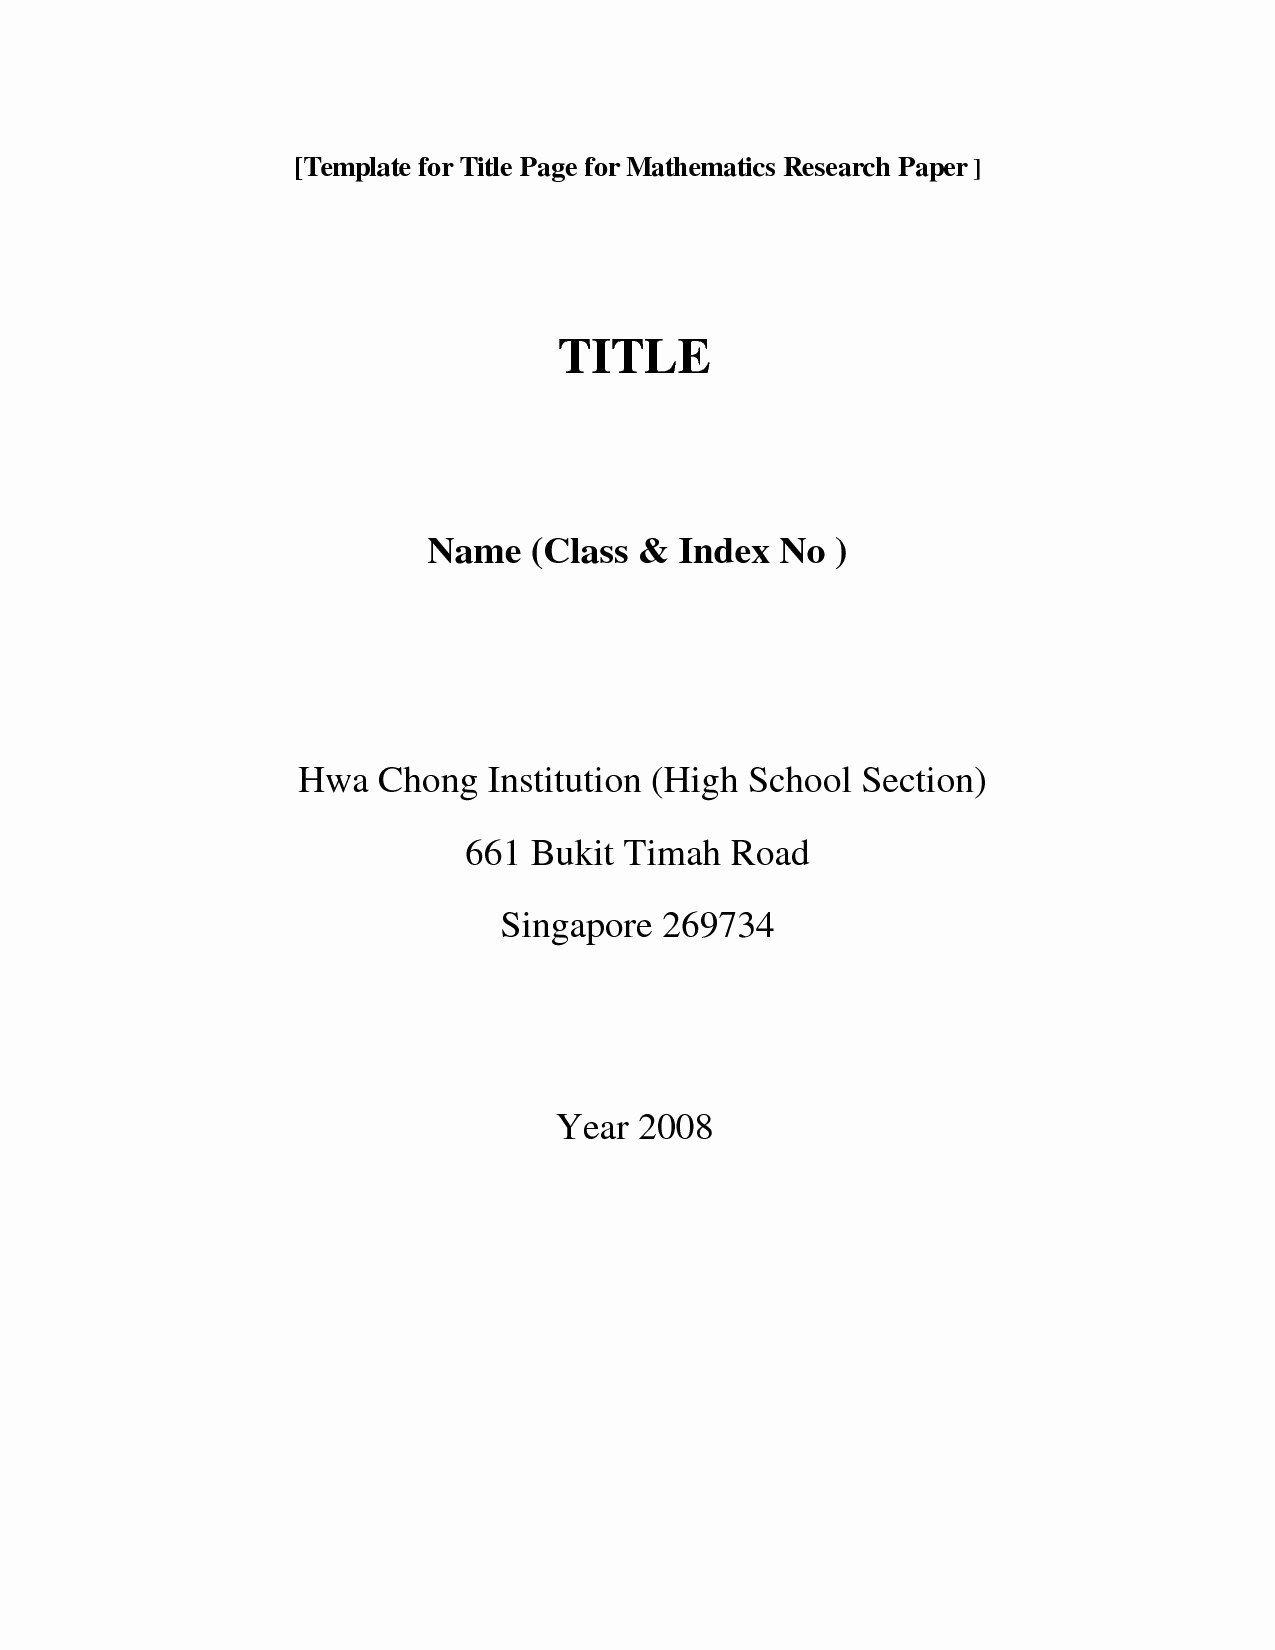 Research Paper Title Page Template Elegant Mla format Title Page Research Paper Bamboodownunder